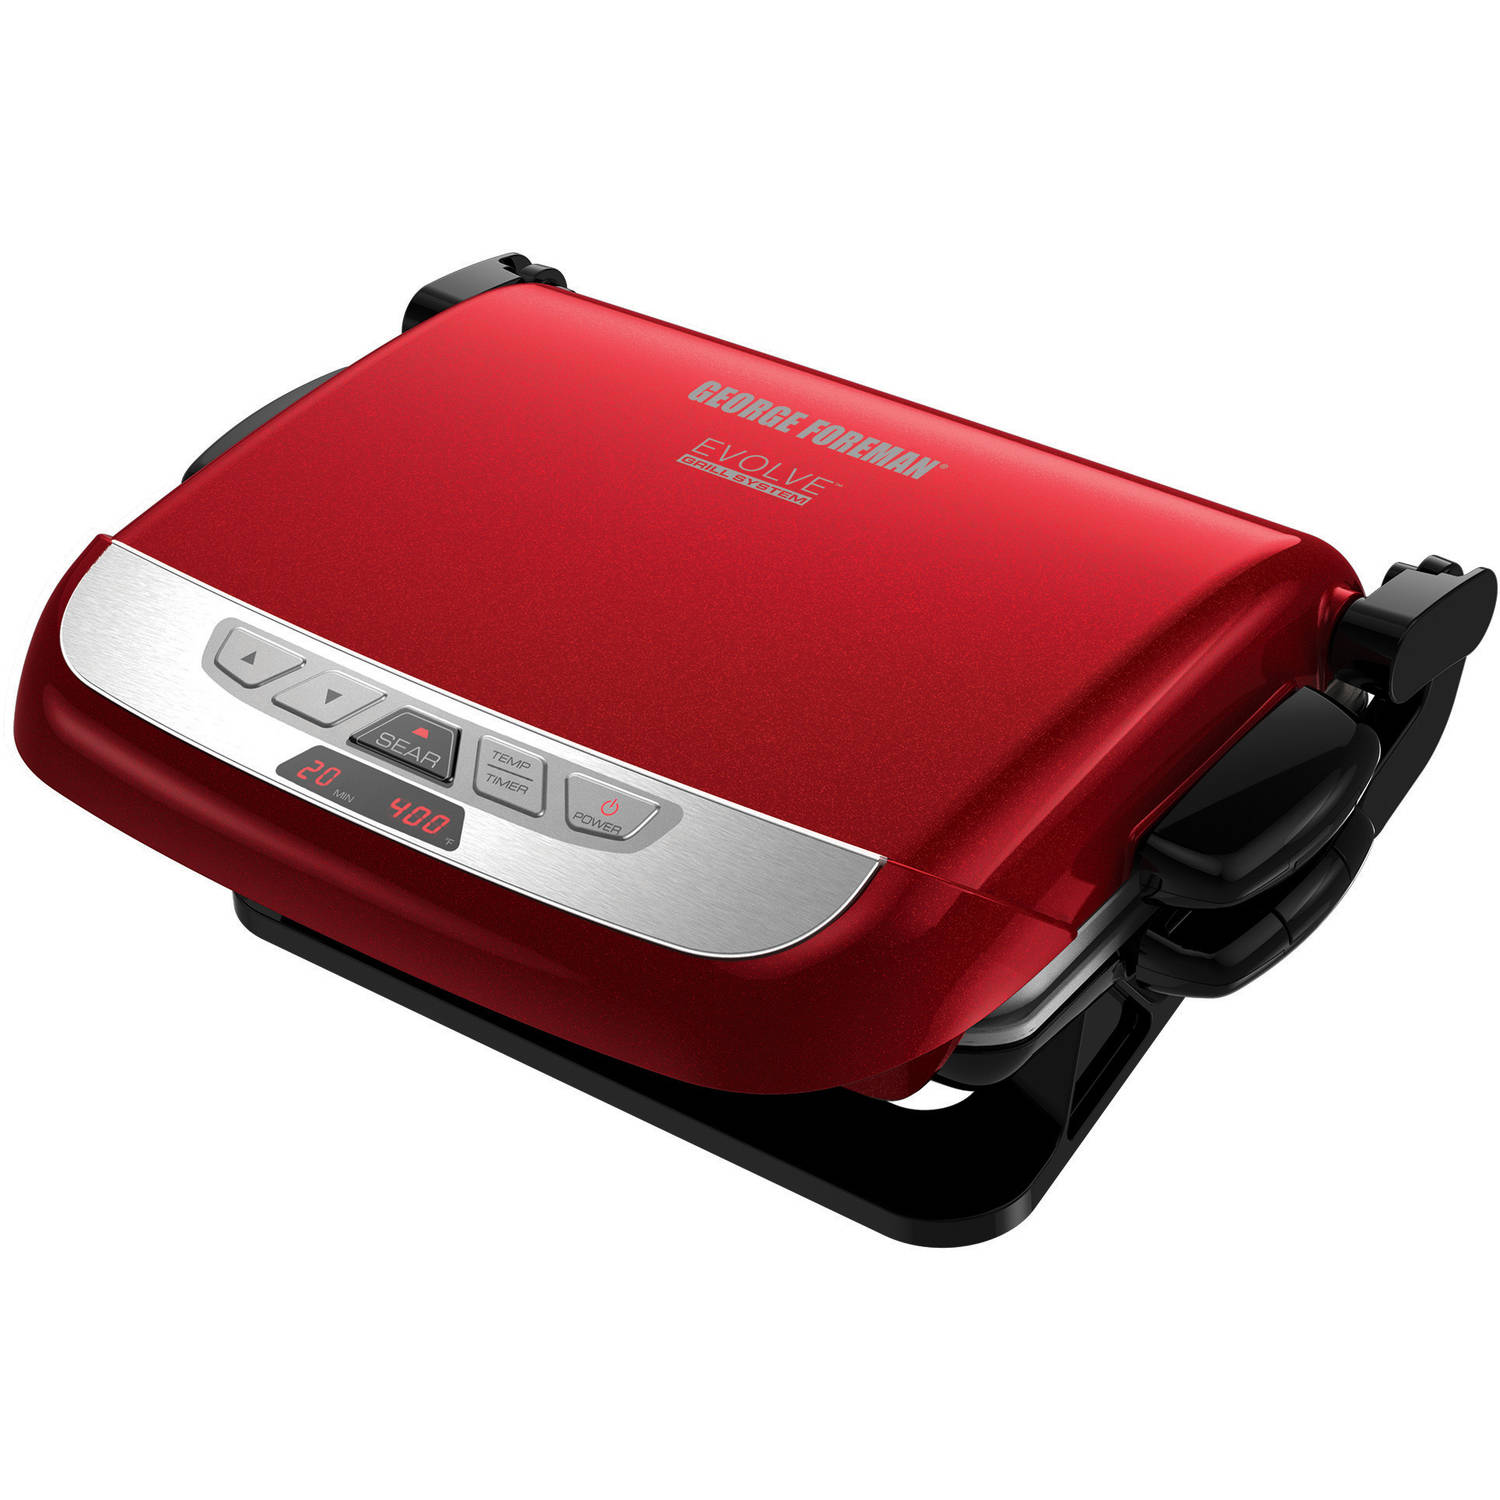 George Foreman Evolve Grill, Waffle Maker, Panini with Removable Plates, Red